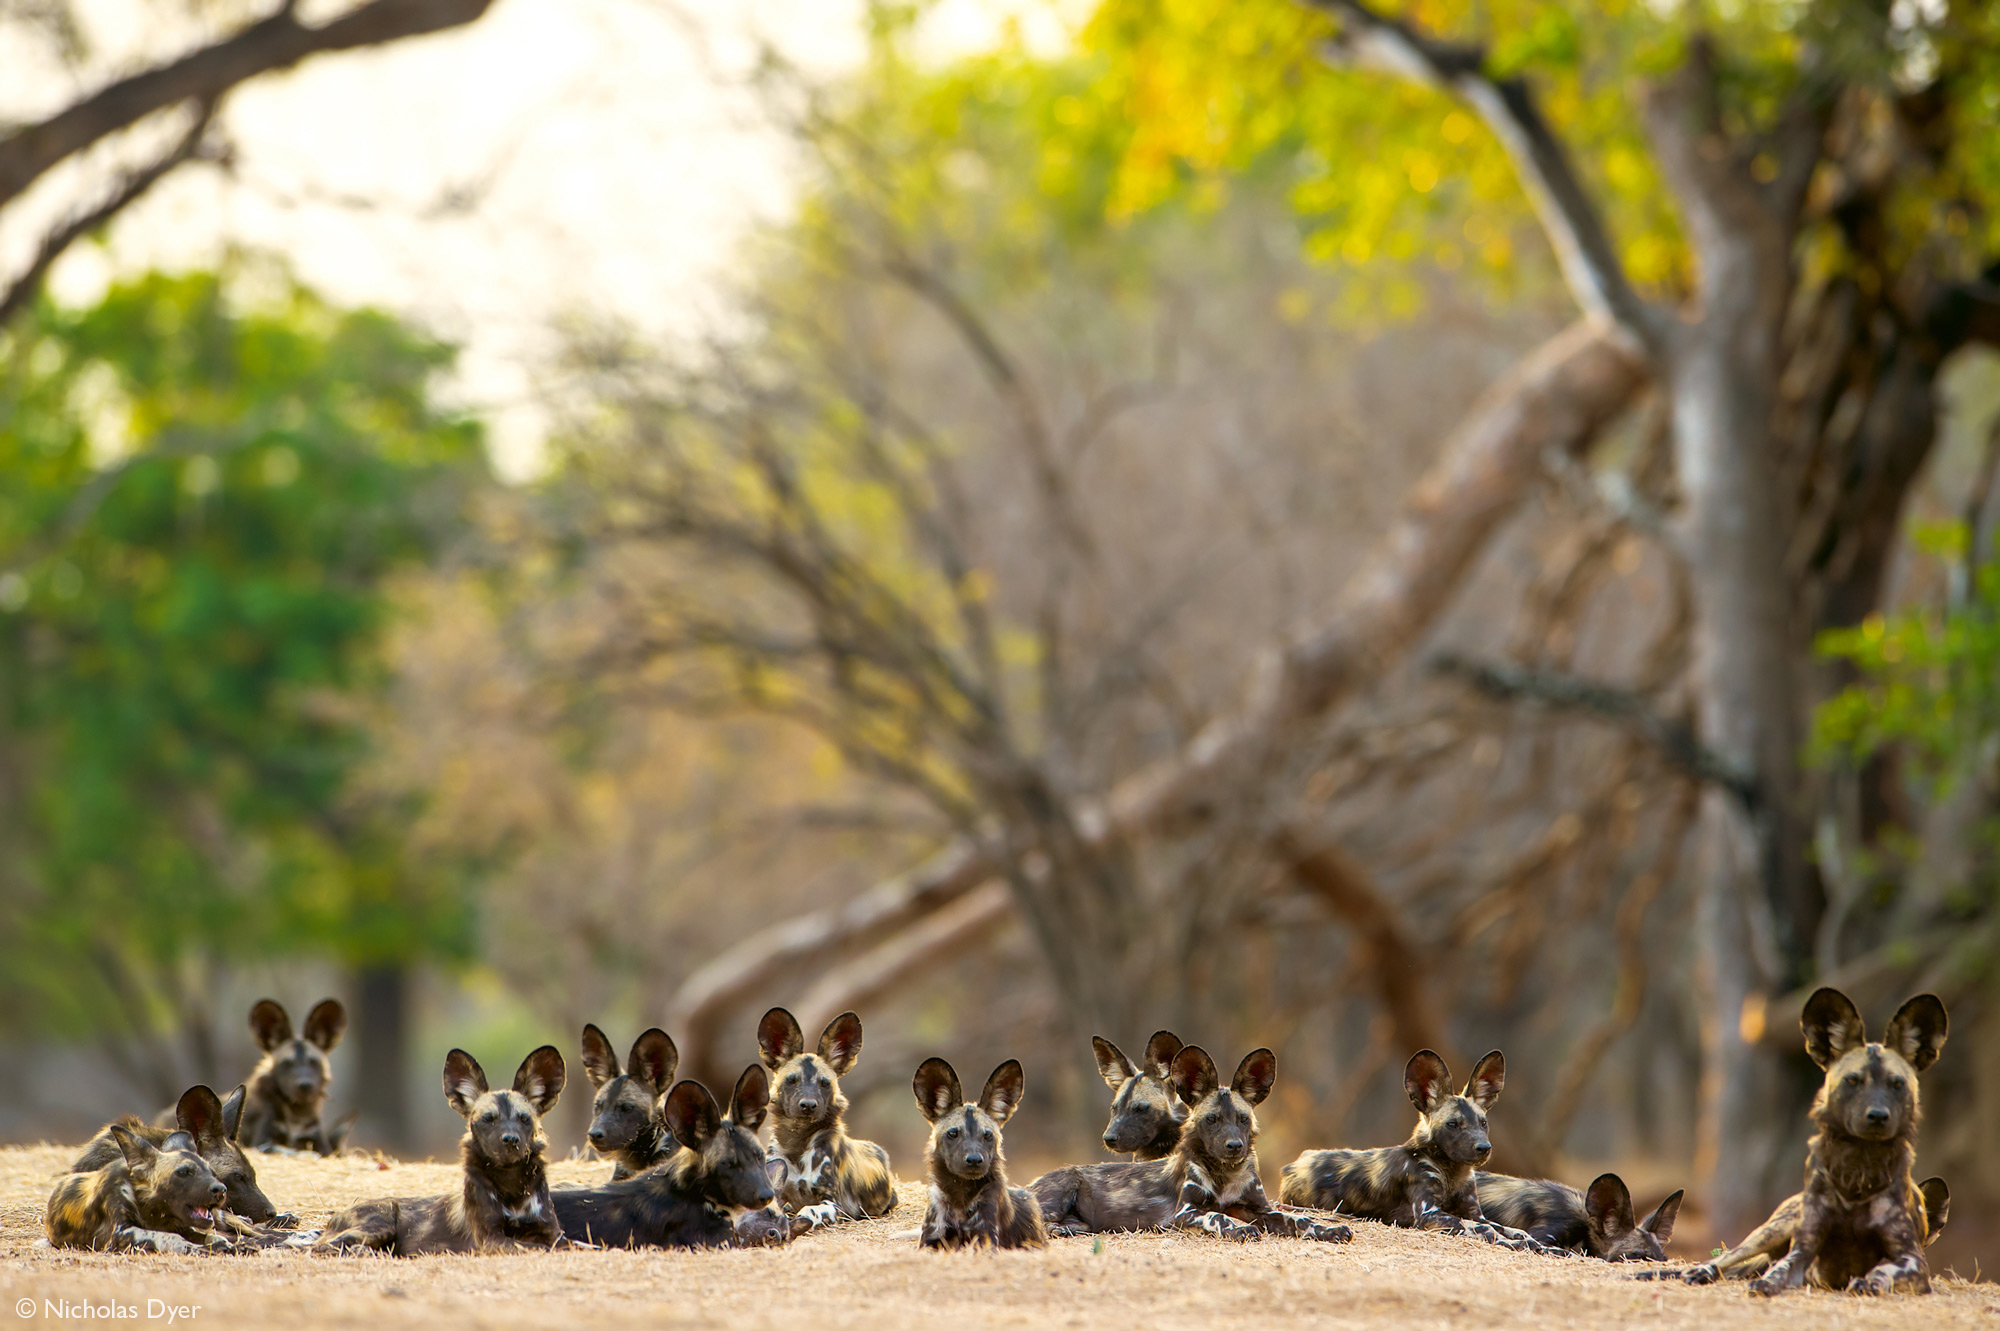 Painted wolves, African wild dogs, sitting in a group in Mana Pools National Park, Zimbabwe